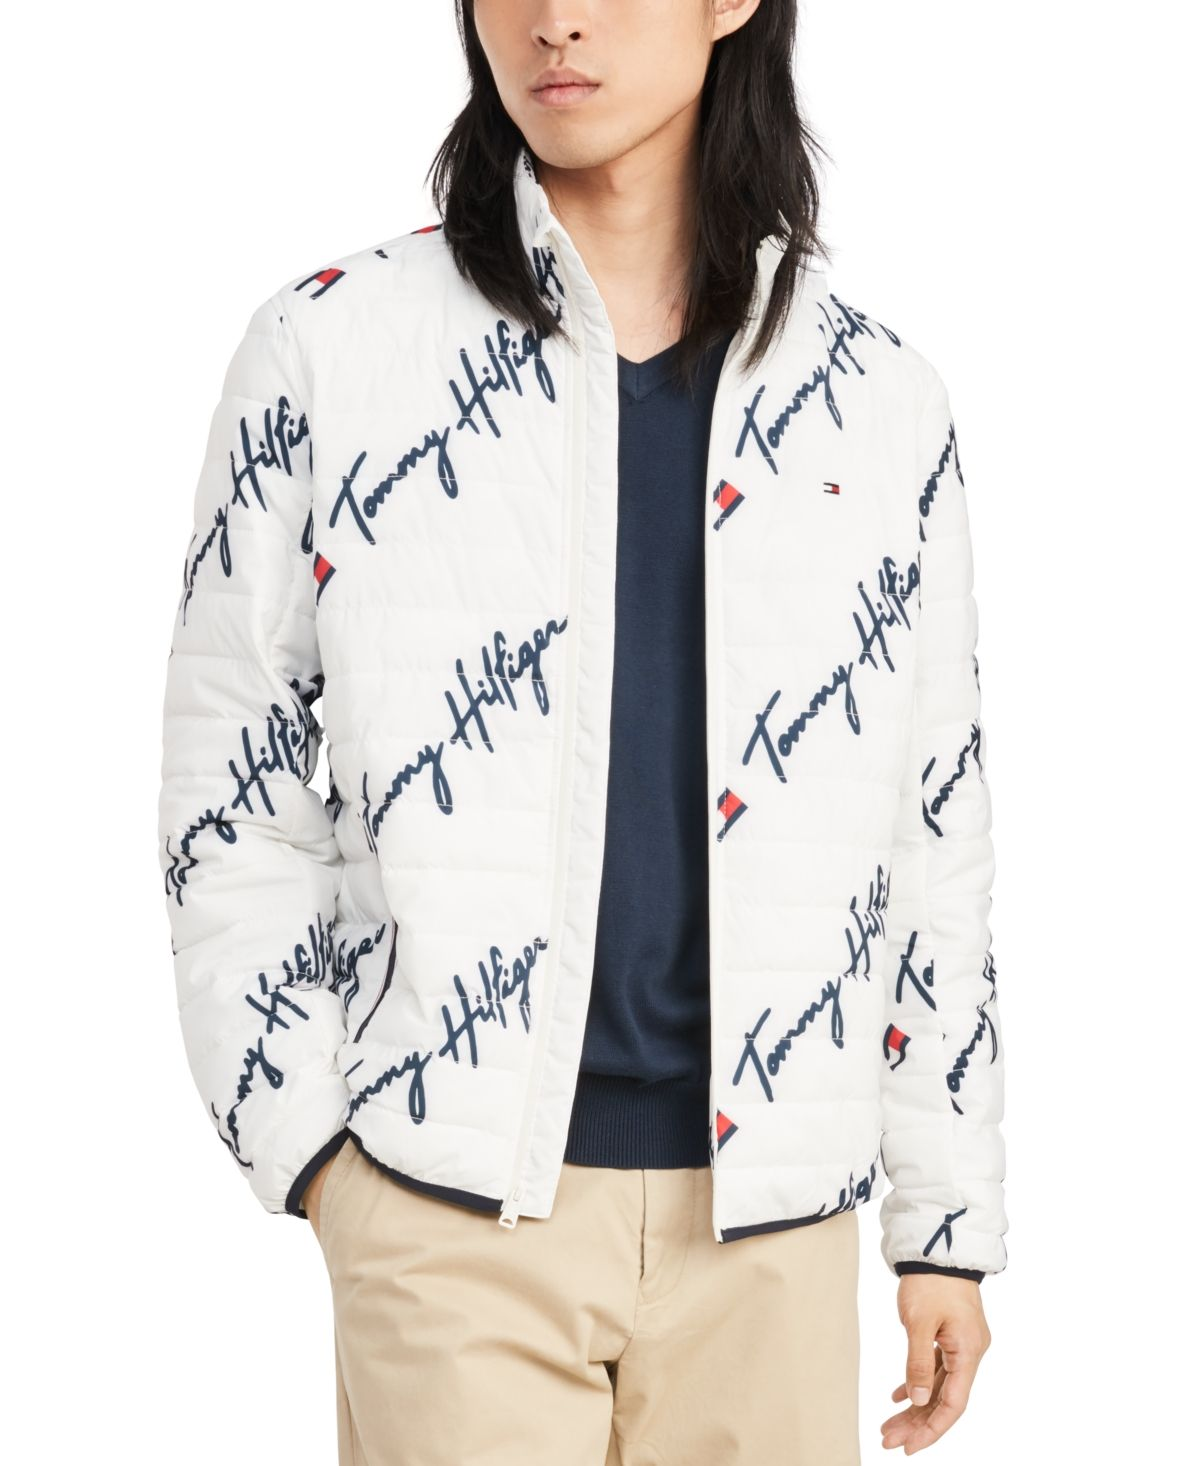 Tommy Hilfiger Men S Insulator Quilted Logo Print Jacket Bright White Multi Winter Outfits Men Tommy Hilfiger Man Tommy Hilfiger [ 1466 x 1200 Pixel ]